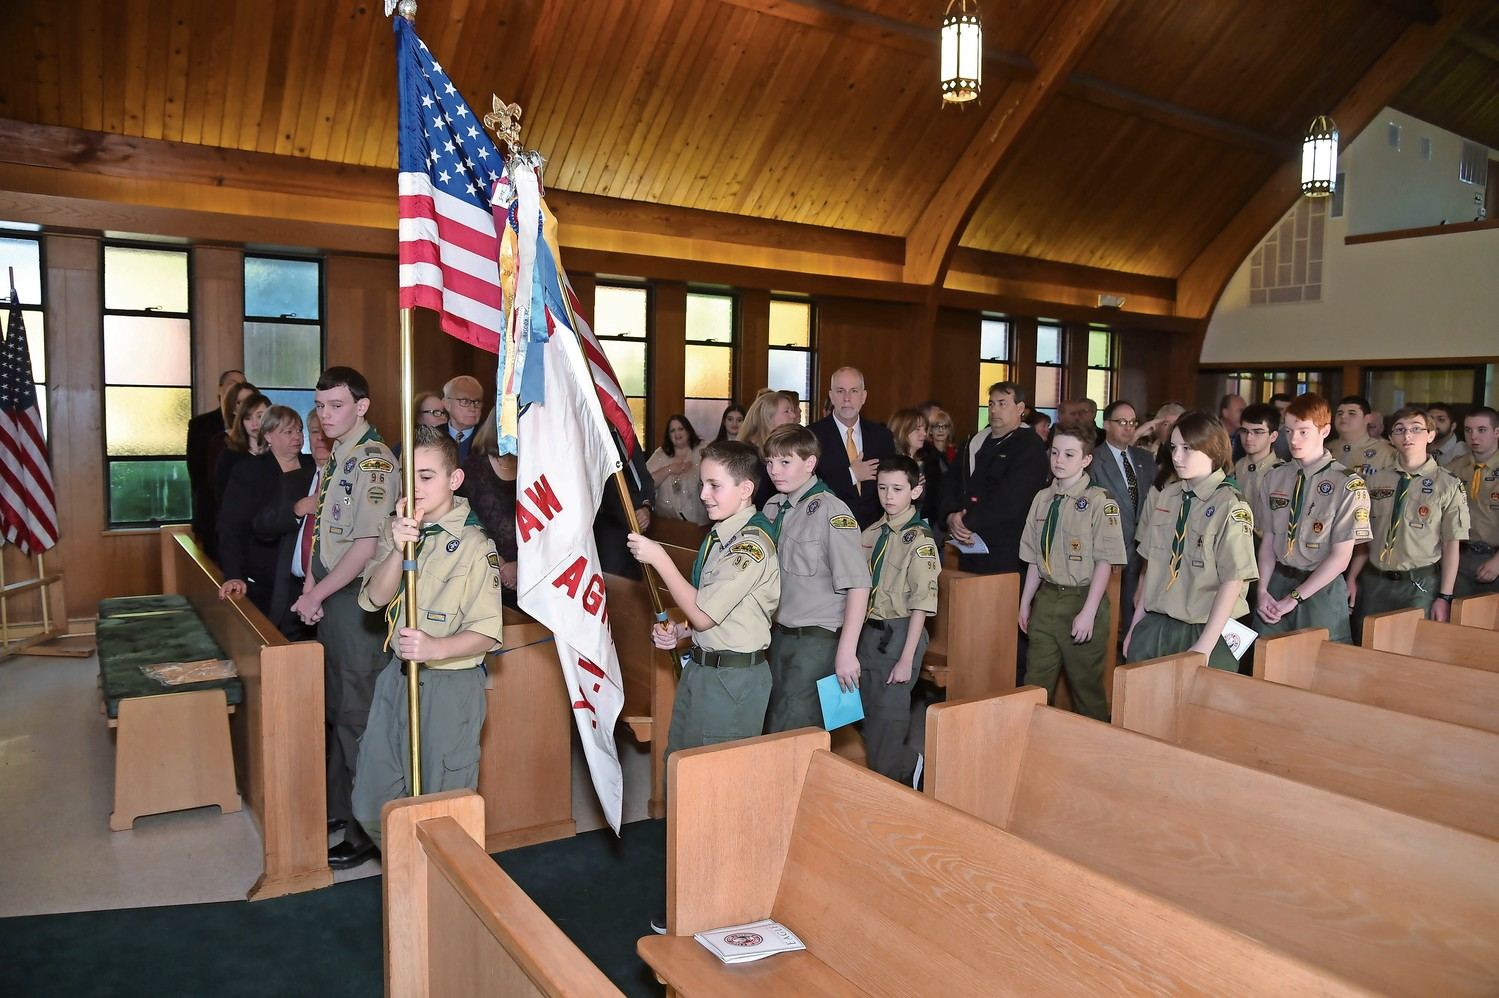 Wantagh Boy Scout Troop 96's color guard kicked off the ceremony at the Wantagh Memorial Congregational Church.